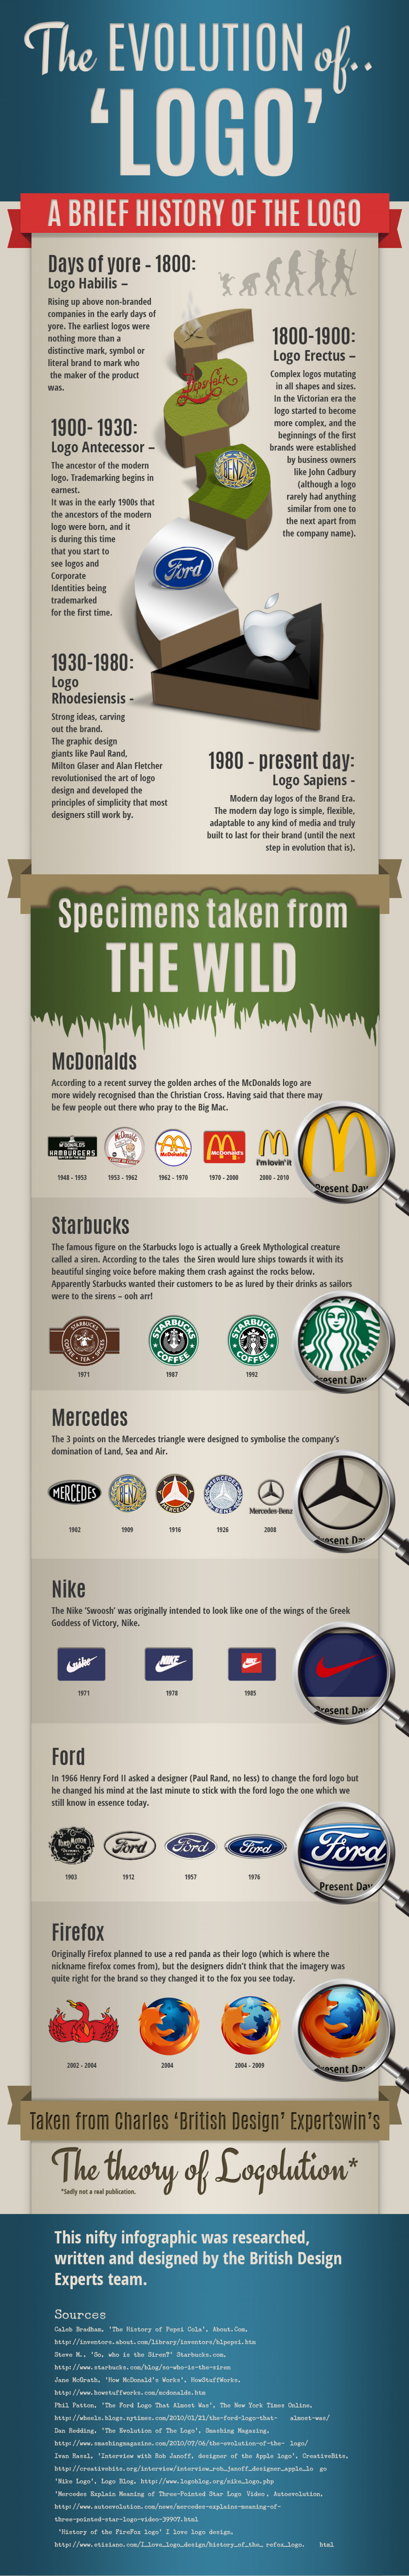 The History of Logo Design | Visual.ly